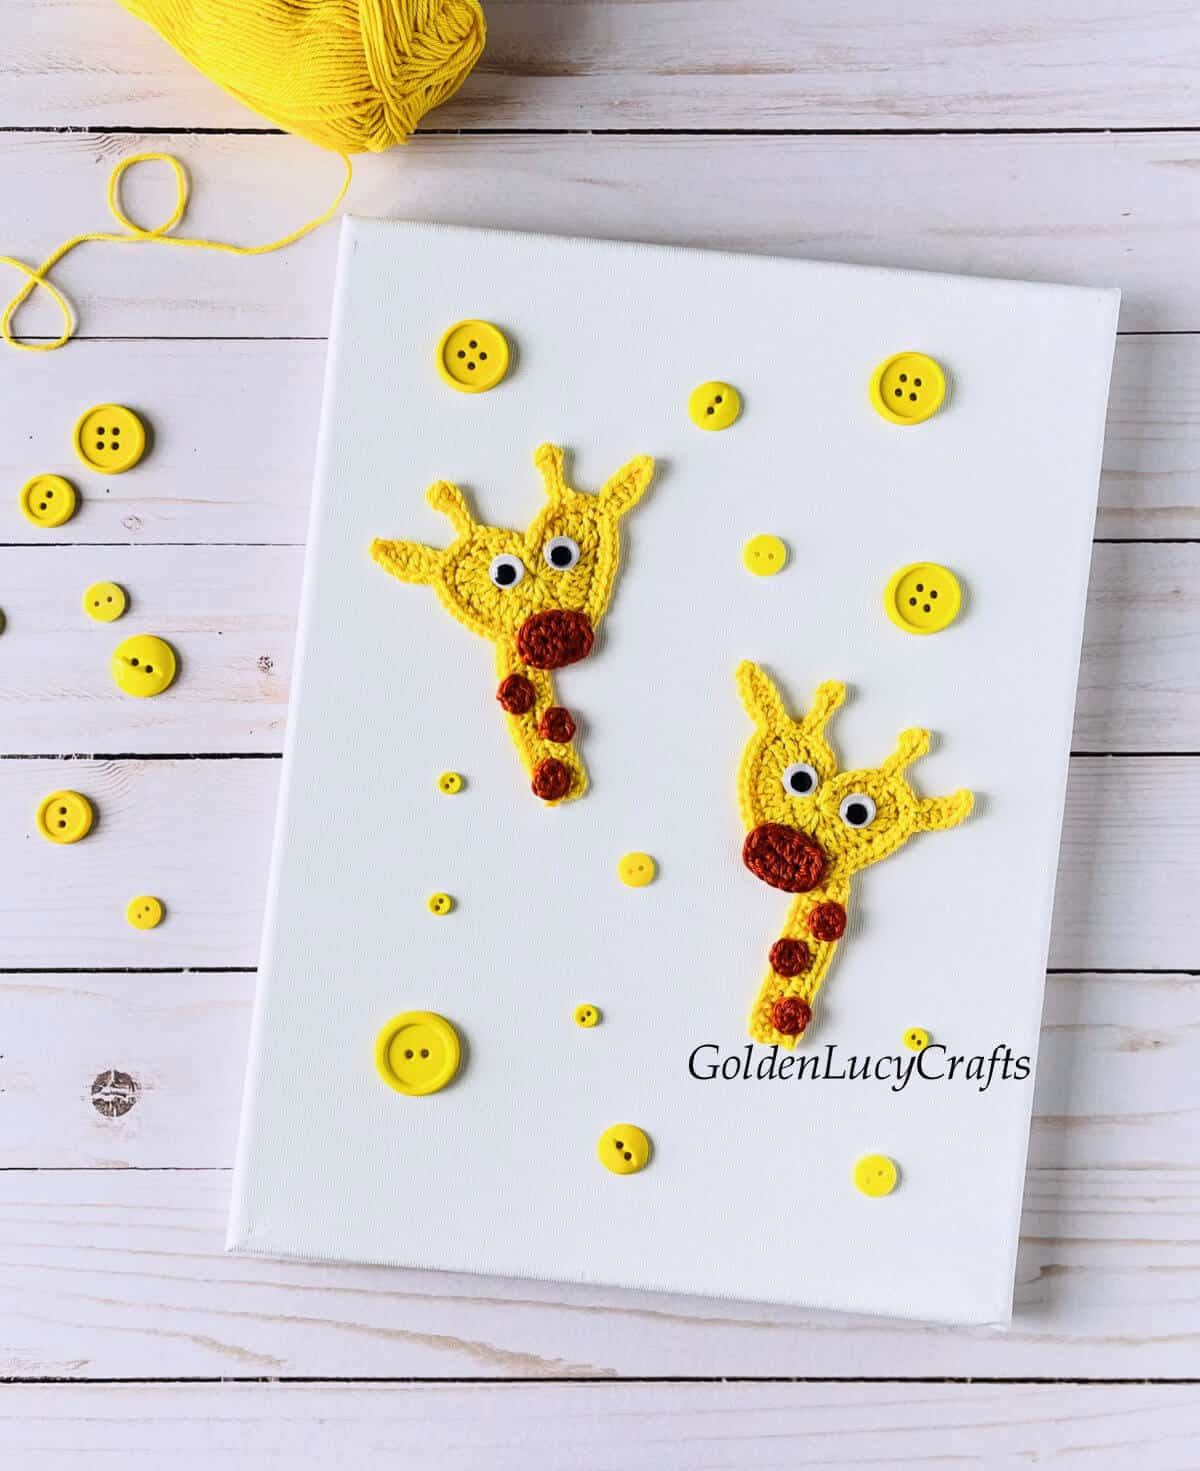 Two giraffe appliques on white canvas, yellow buttons and yellow skein of yarn.